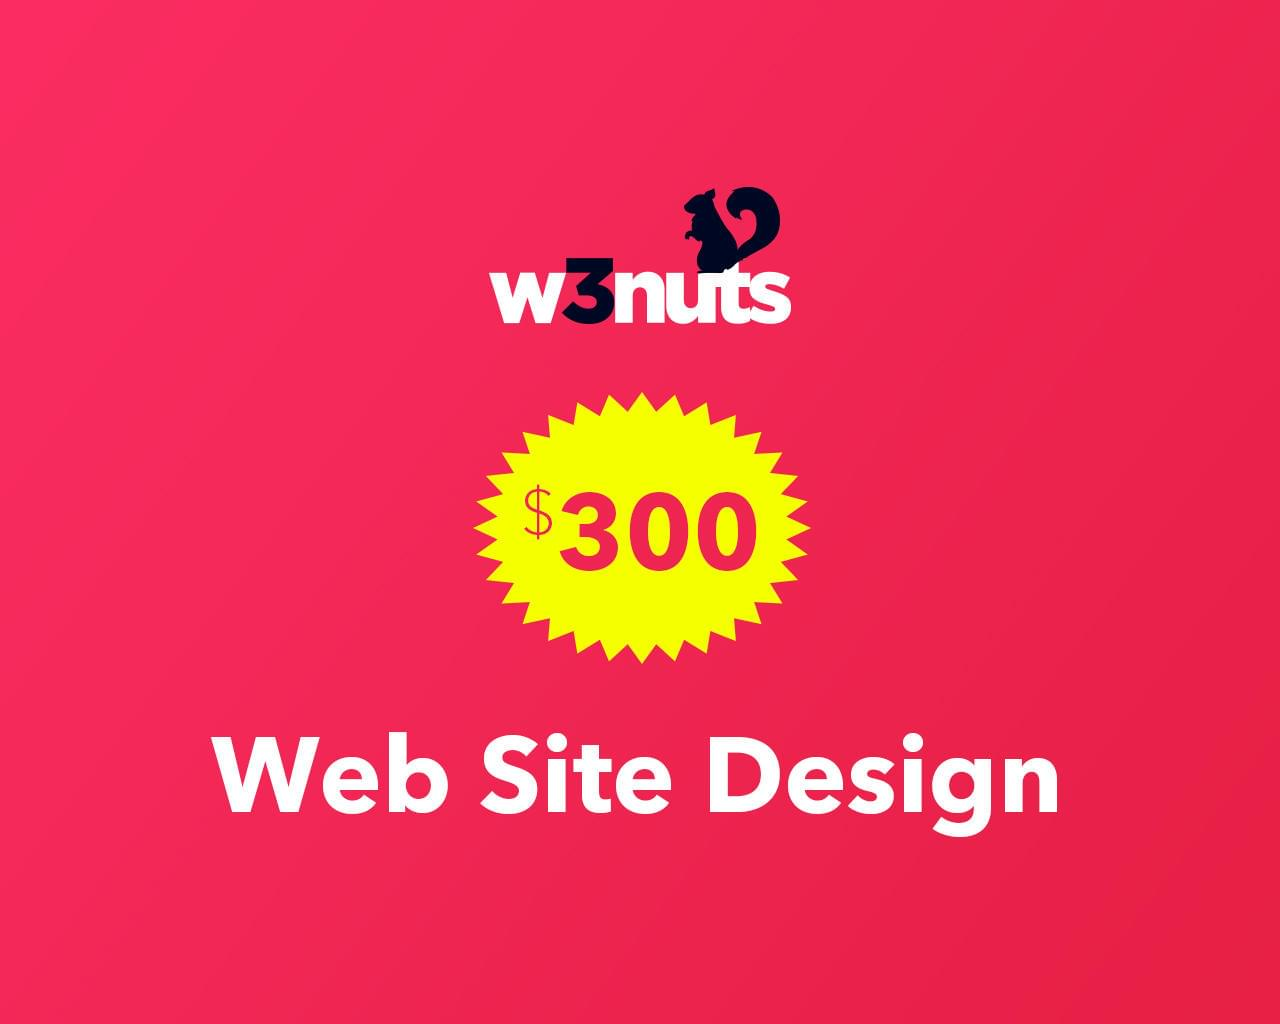 Web Site Design Website Redesign Services  by samirkaila - 116117